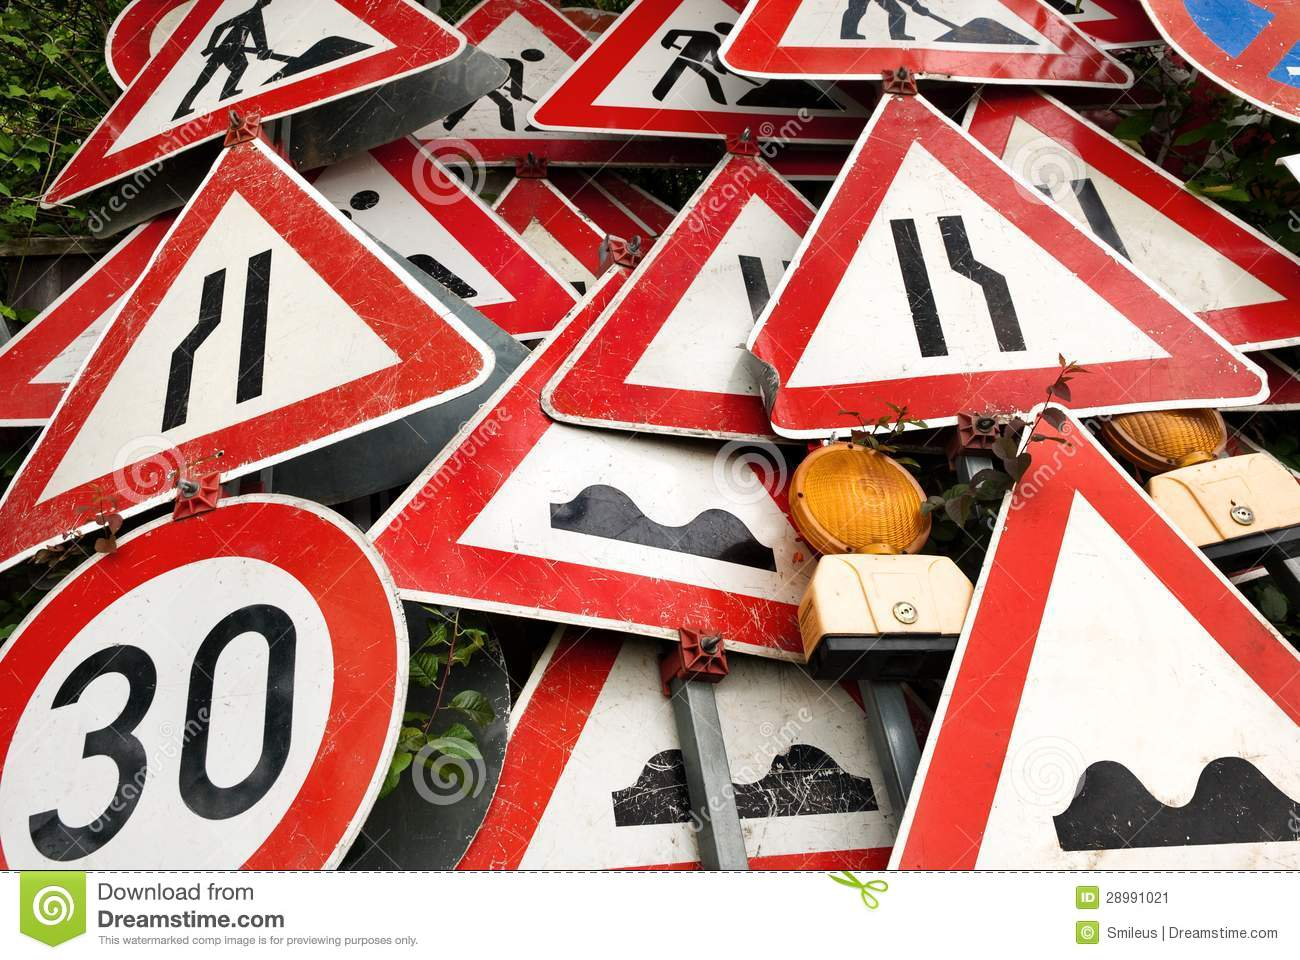 Triangle Road Signs >> Pile Of Traffic Signs Stock Image - Image: 28991021